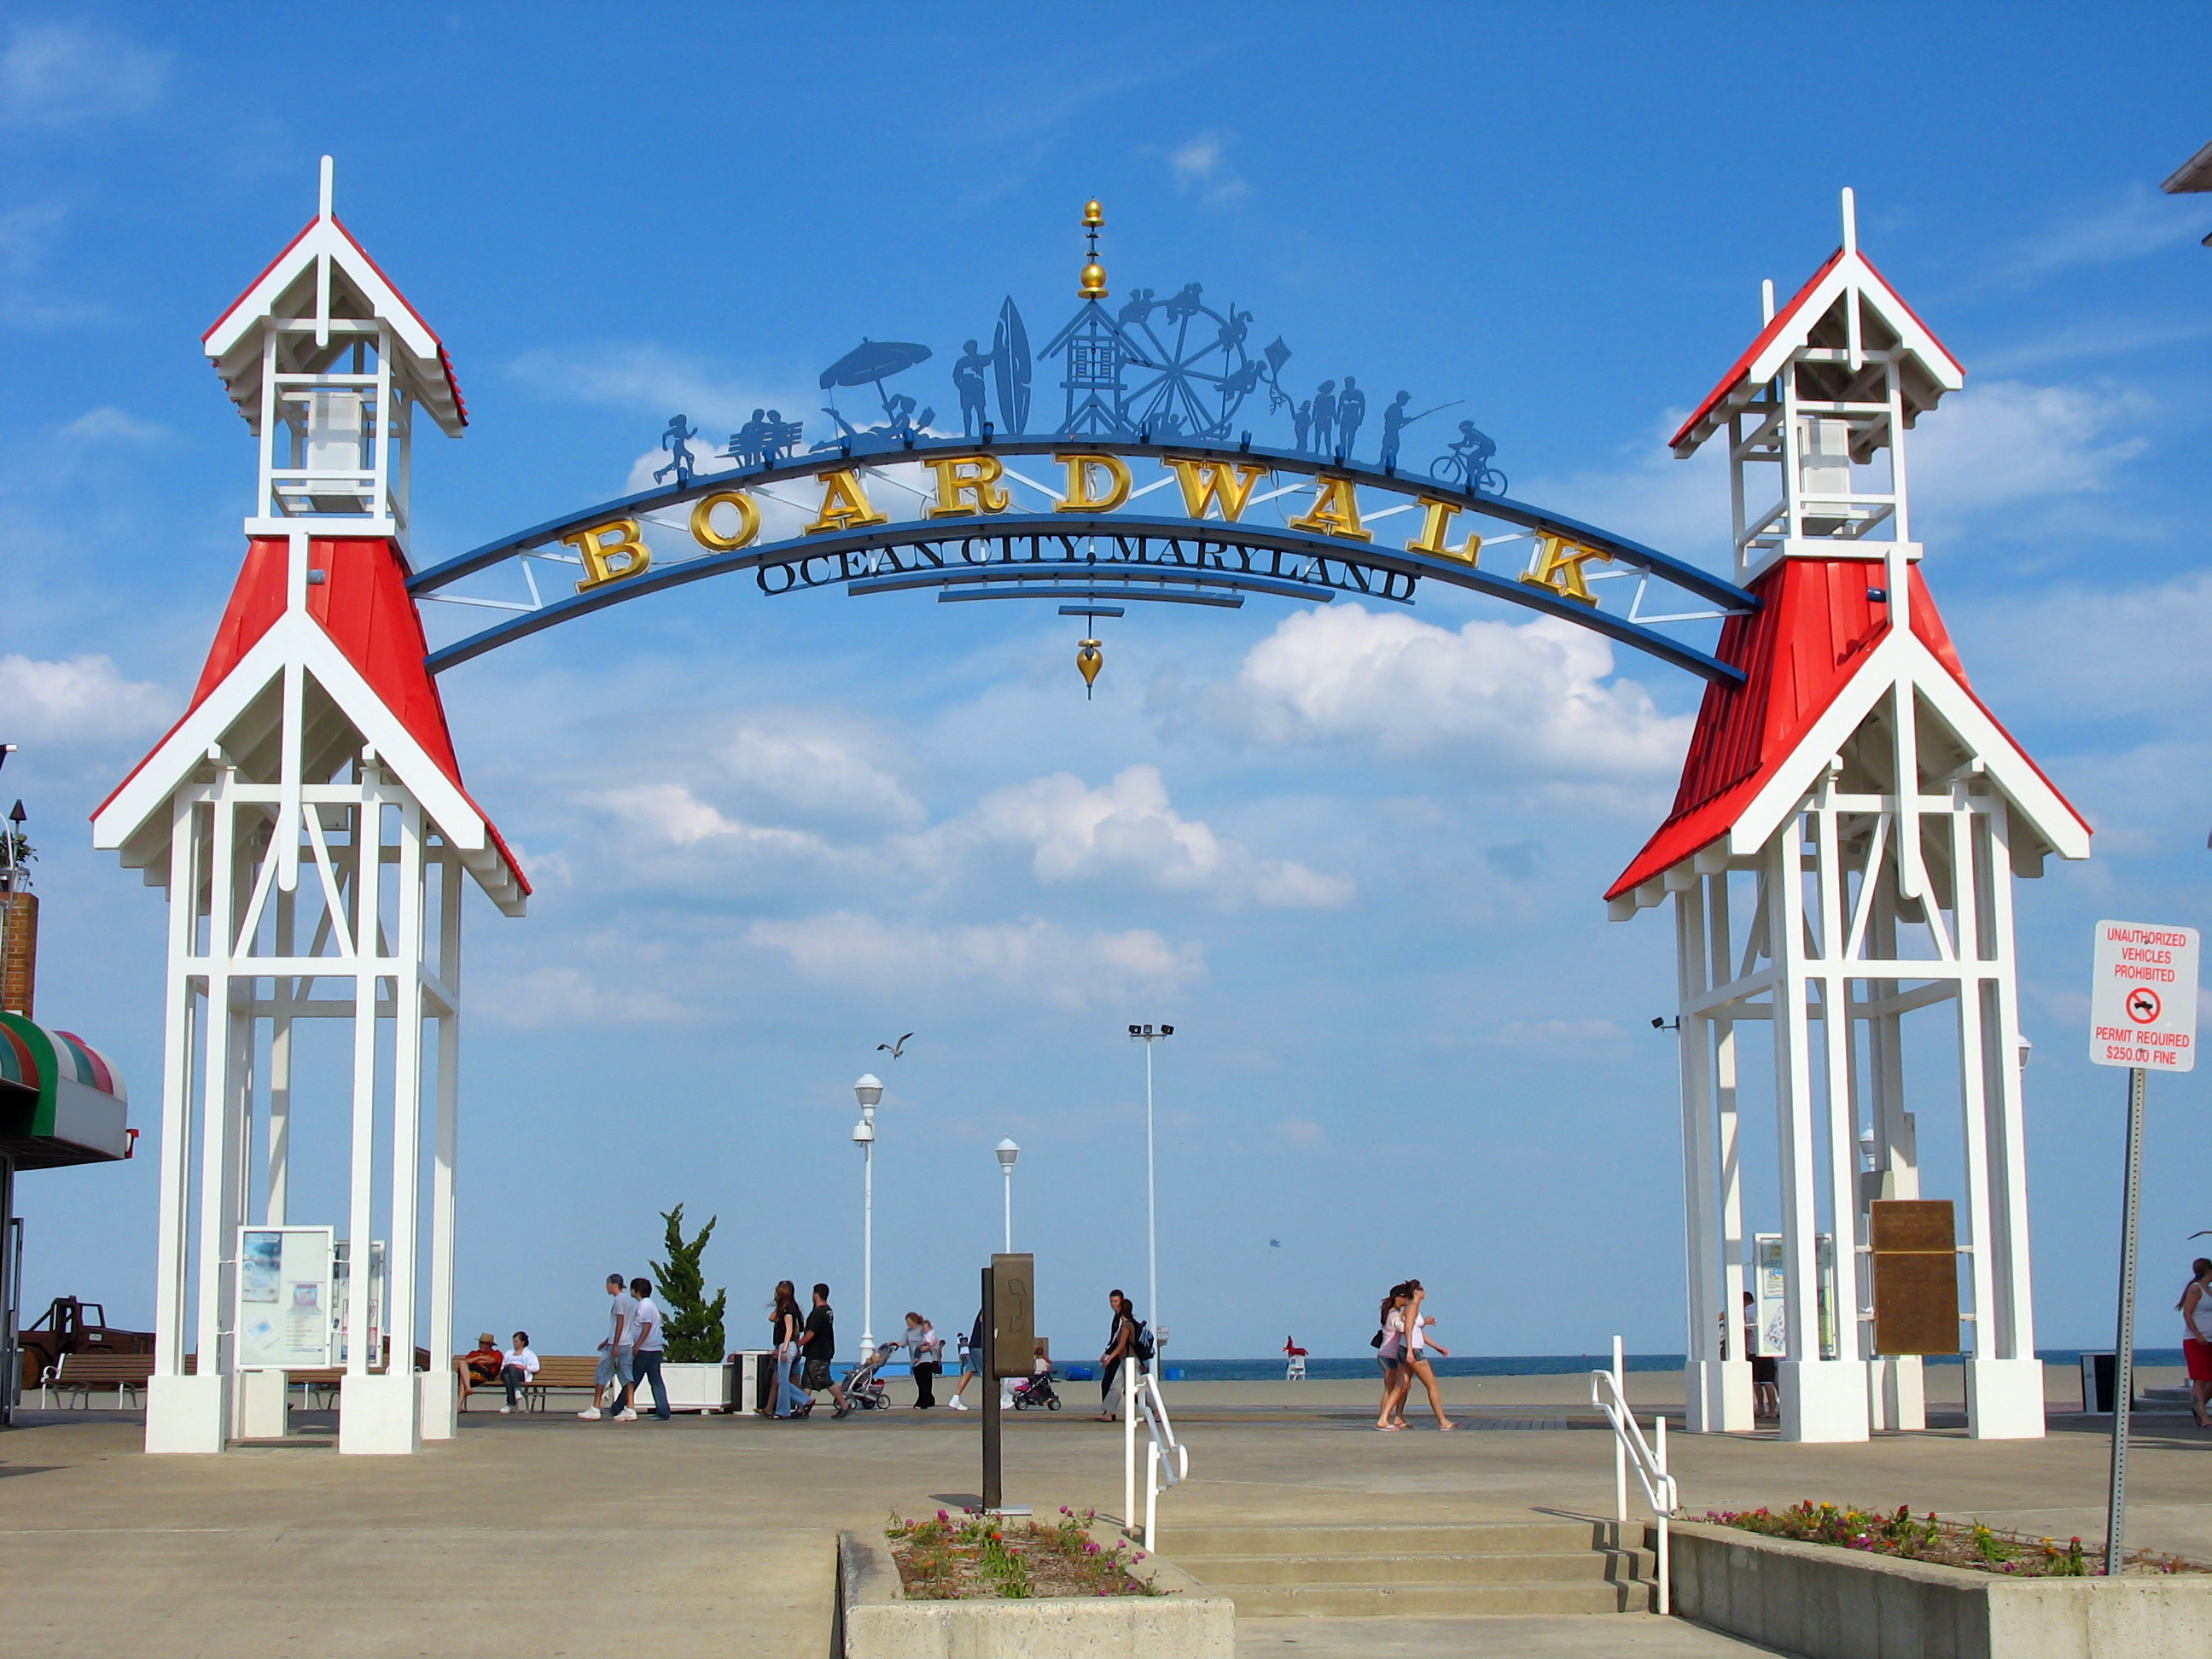 north carolina beach map with Ocean City Boardwalk Attractions on Creeks additionally San Francisco Fishermans Wharf Map further Outer Banks Usa Travel Guide together with Hipster Hangouts In New Orleans likewise Ski Beech Mountain Resort.